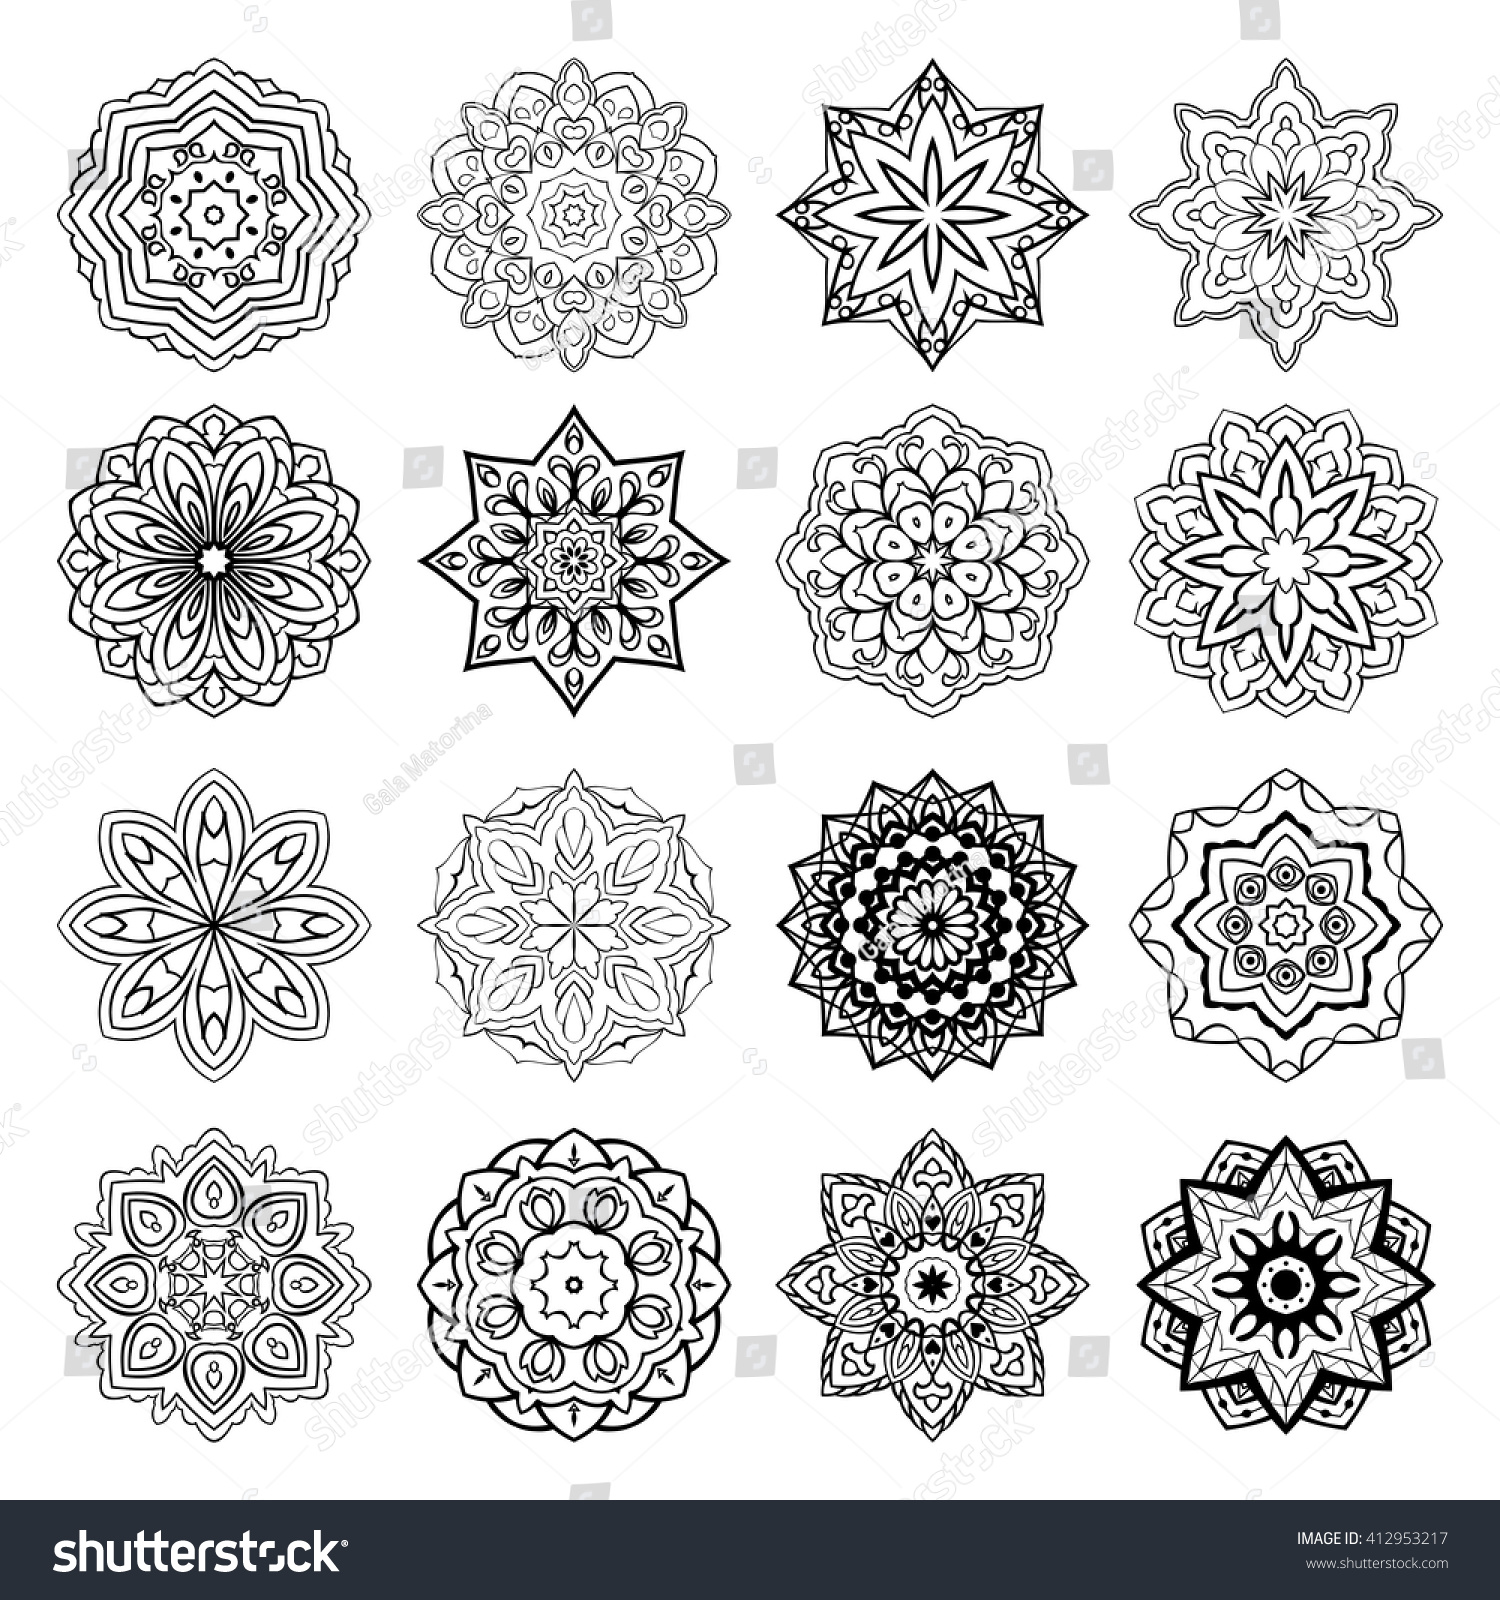 Set Mandalas Collection Stylized Stars Snowflakes Stock Vector (2018 ...